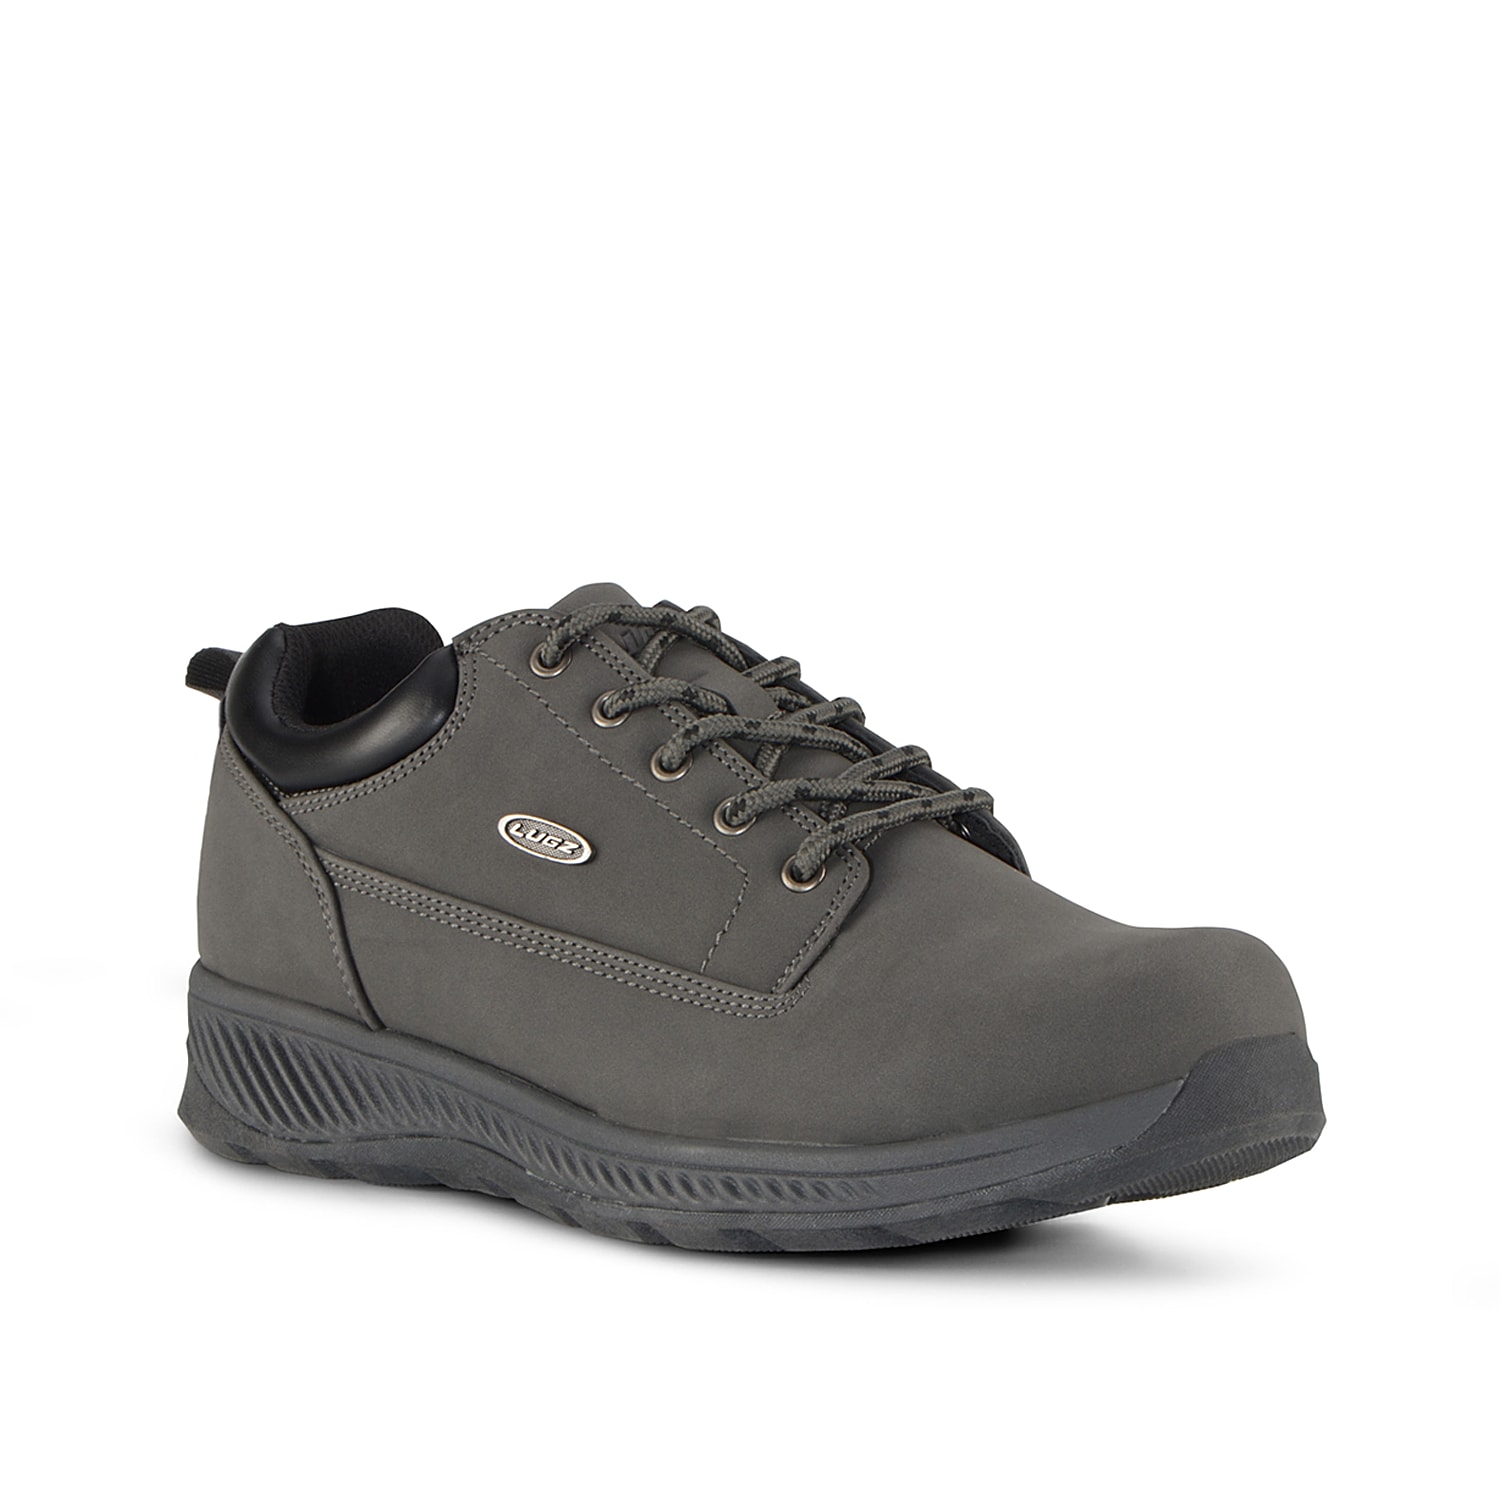 Once you put on the Bison sneaker from Lugz, you\\\'ll never want to take them off! A Flexastride memory foam footbed cushions every step while the slip-resistant sole ensures sturdy steps.